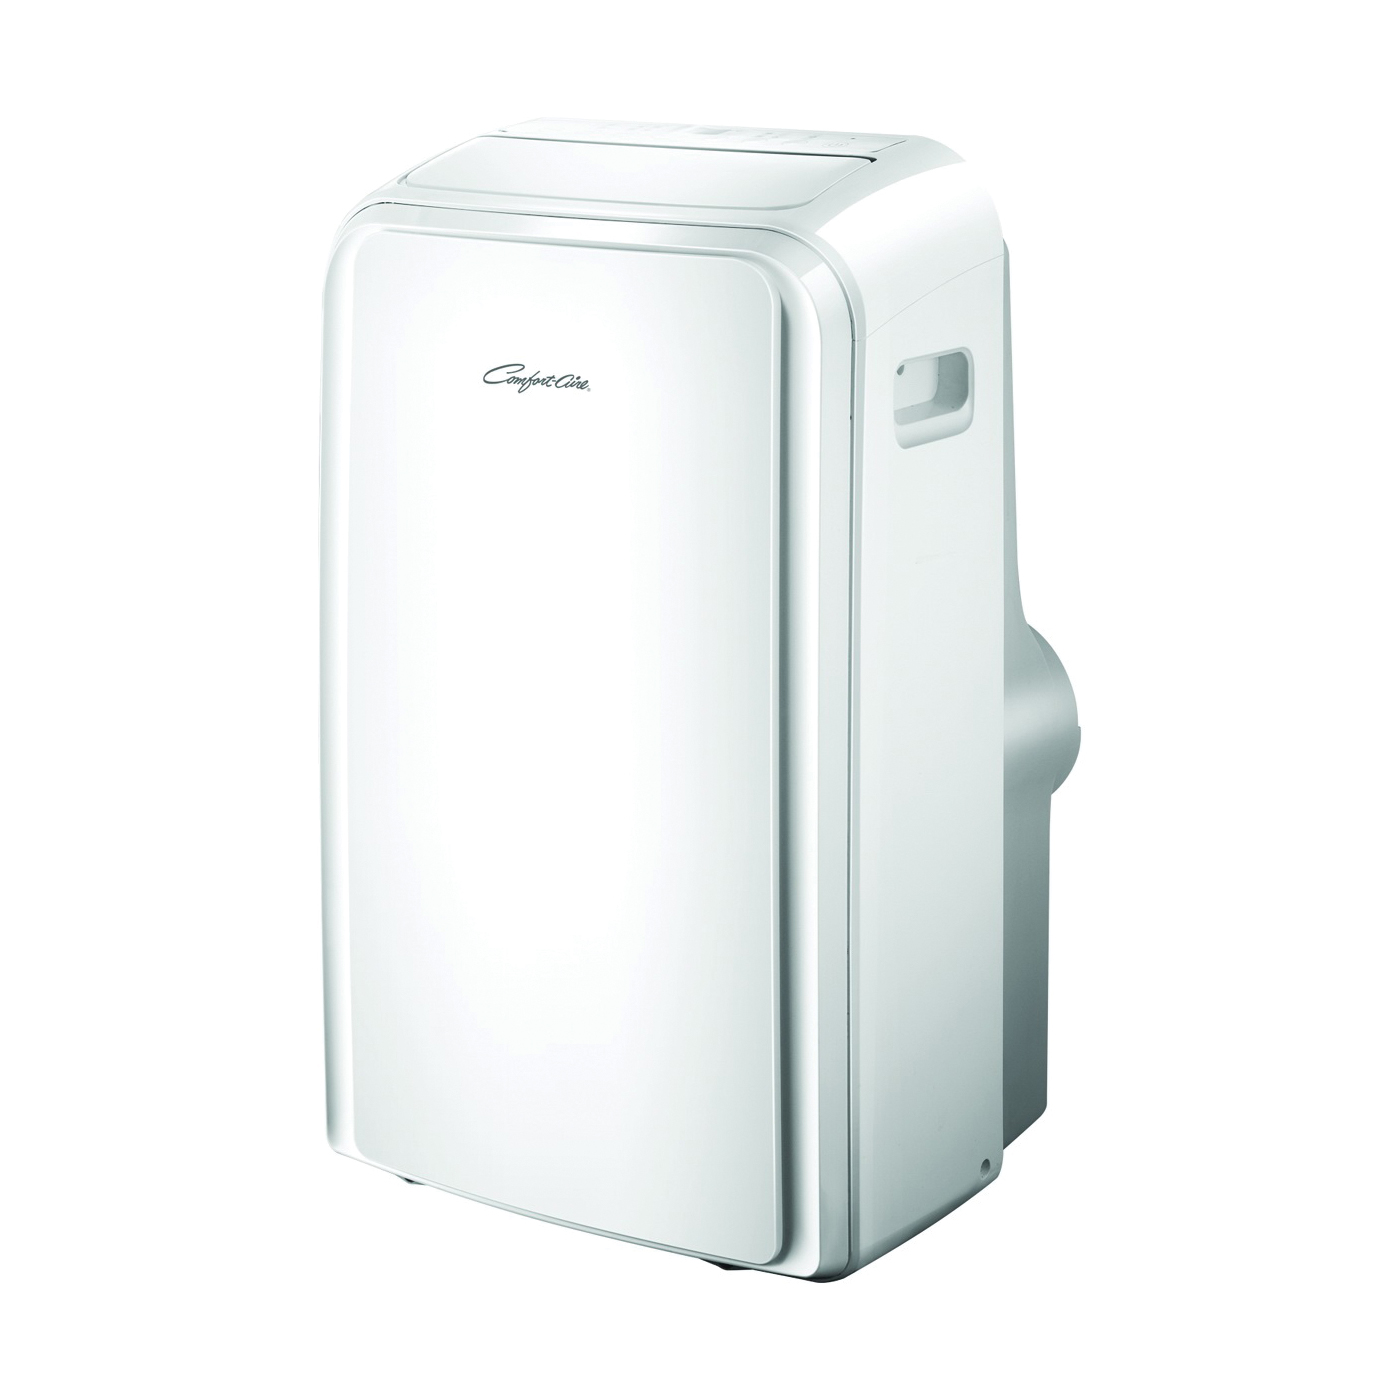 Picture of Comfort-Aire PS-121B Portable Air Conditioner, 115 V, 60 Hz, 12,000 Btu/hr Cooling, 3-Speed, R-410a Refrigerant